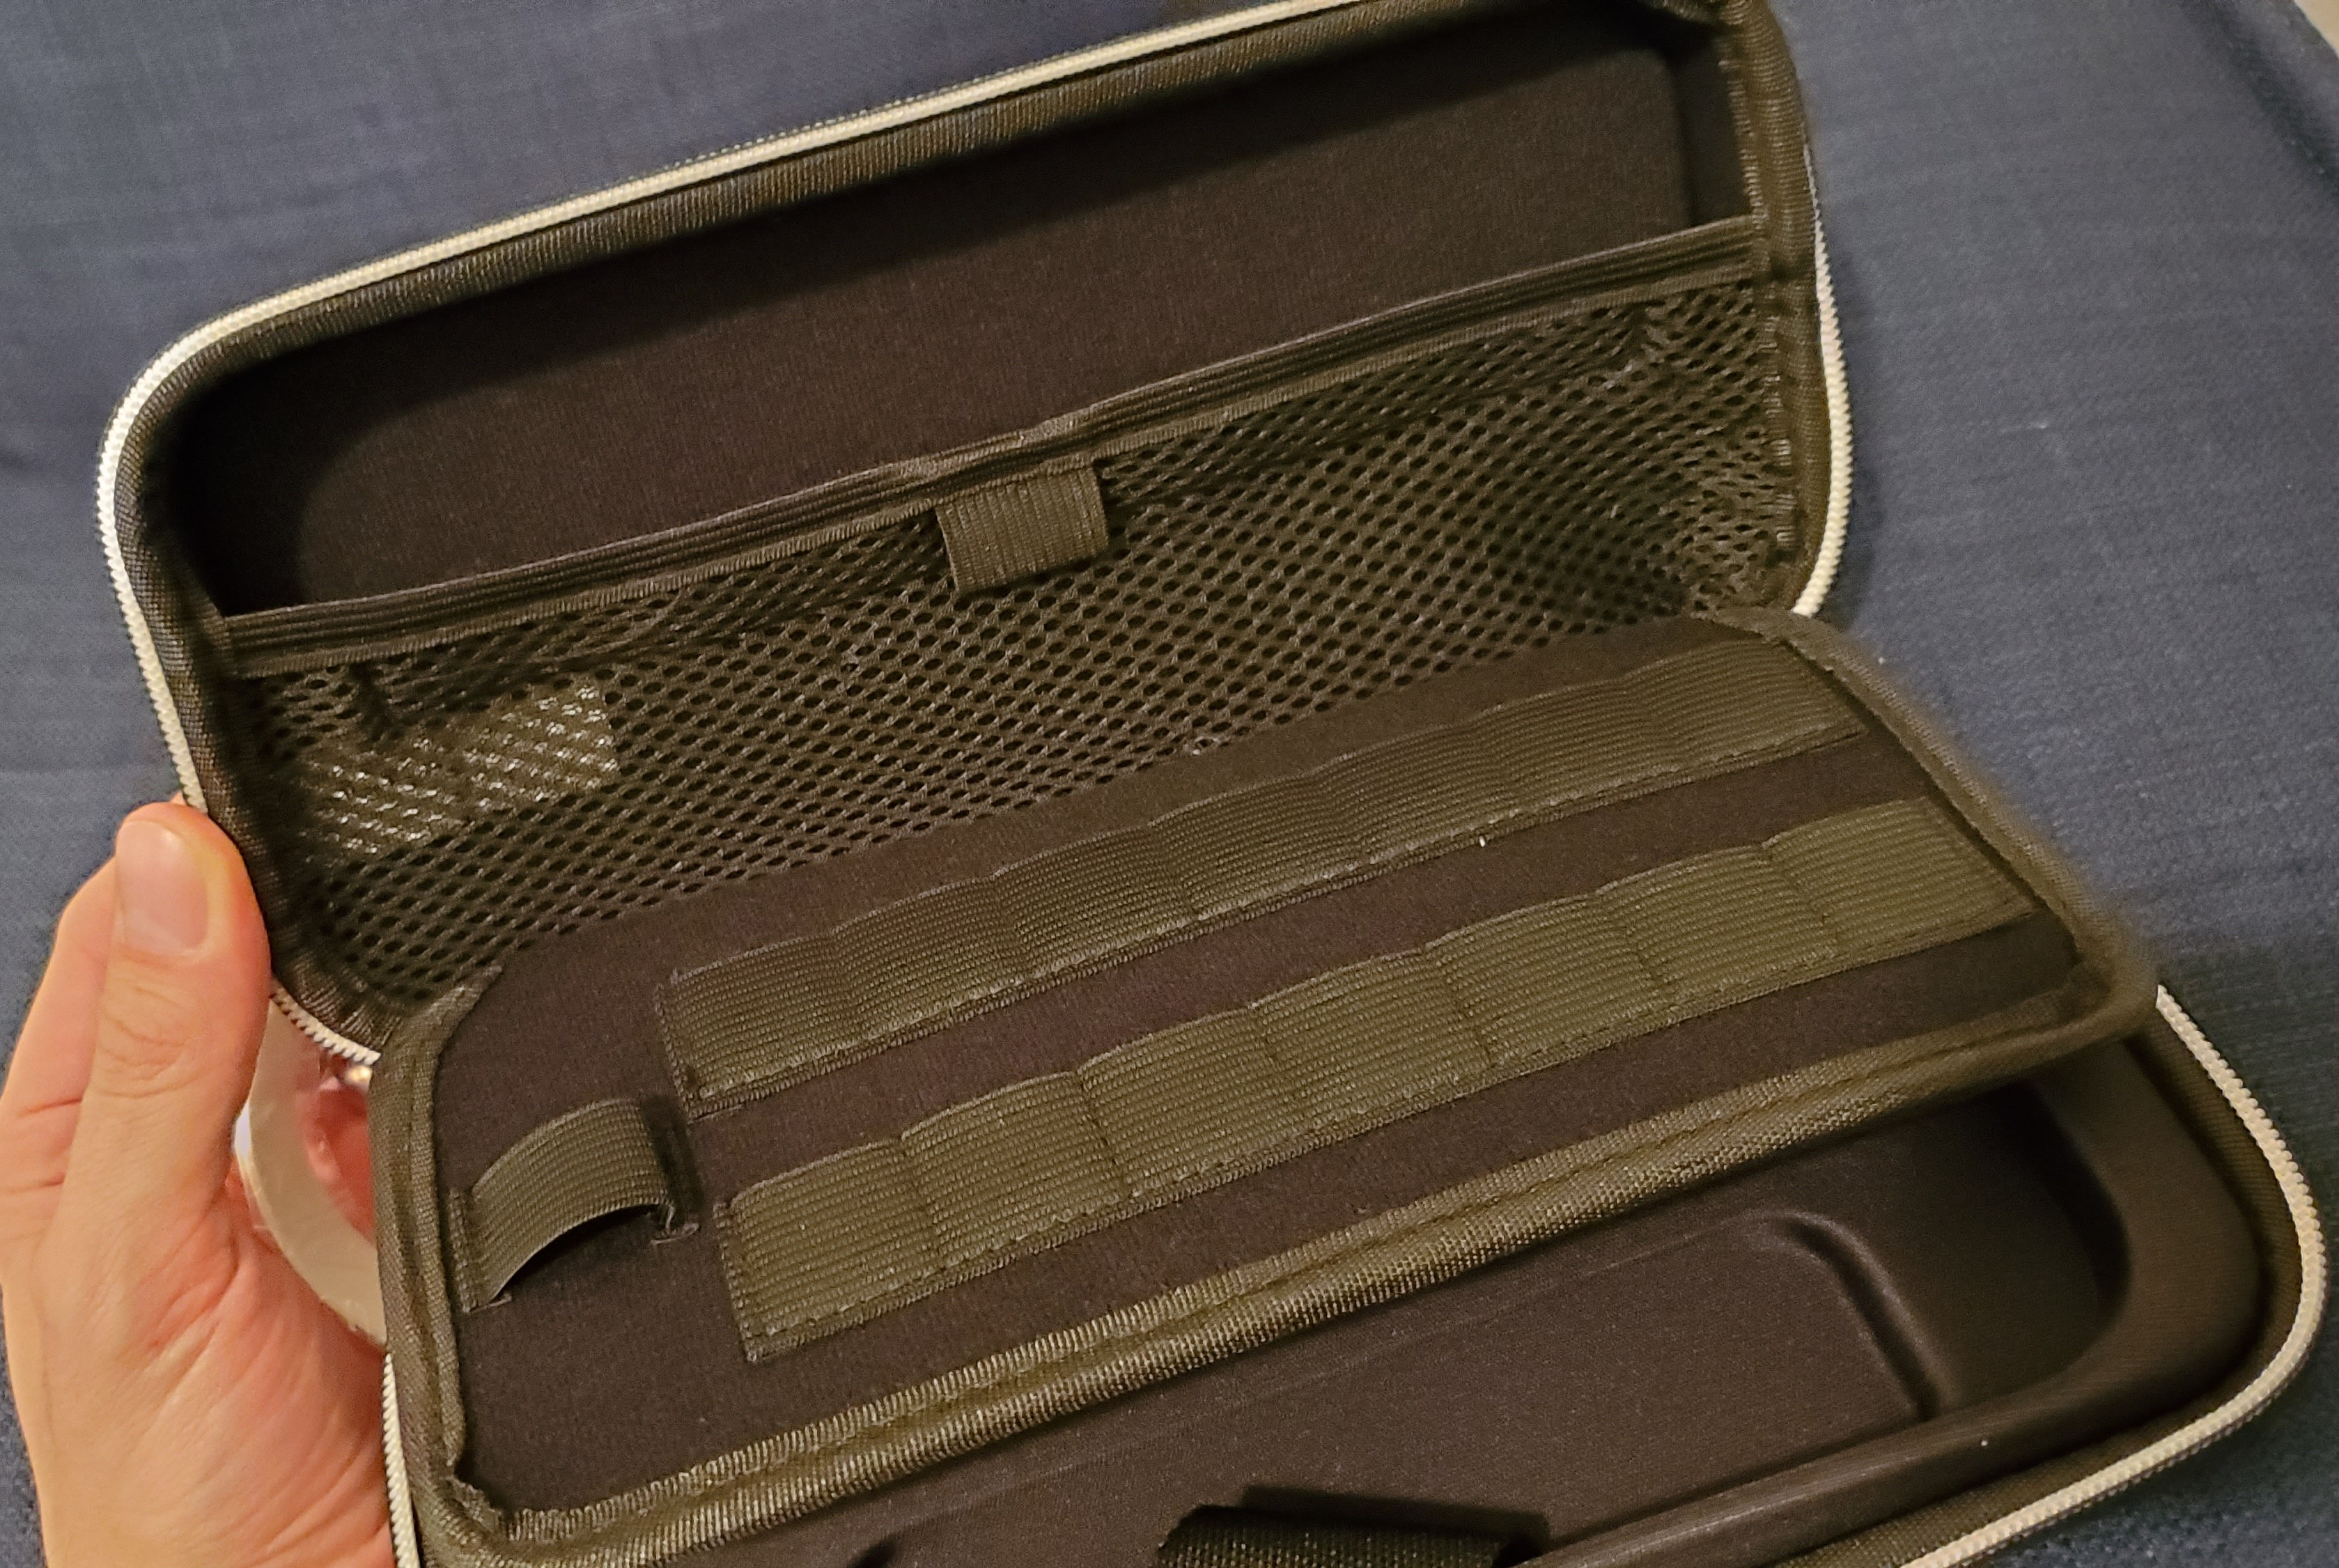 Switch Deluxe Travel Case review inside the case